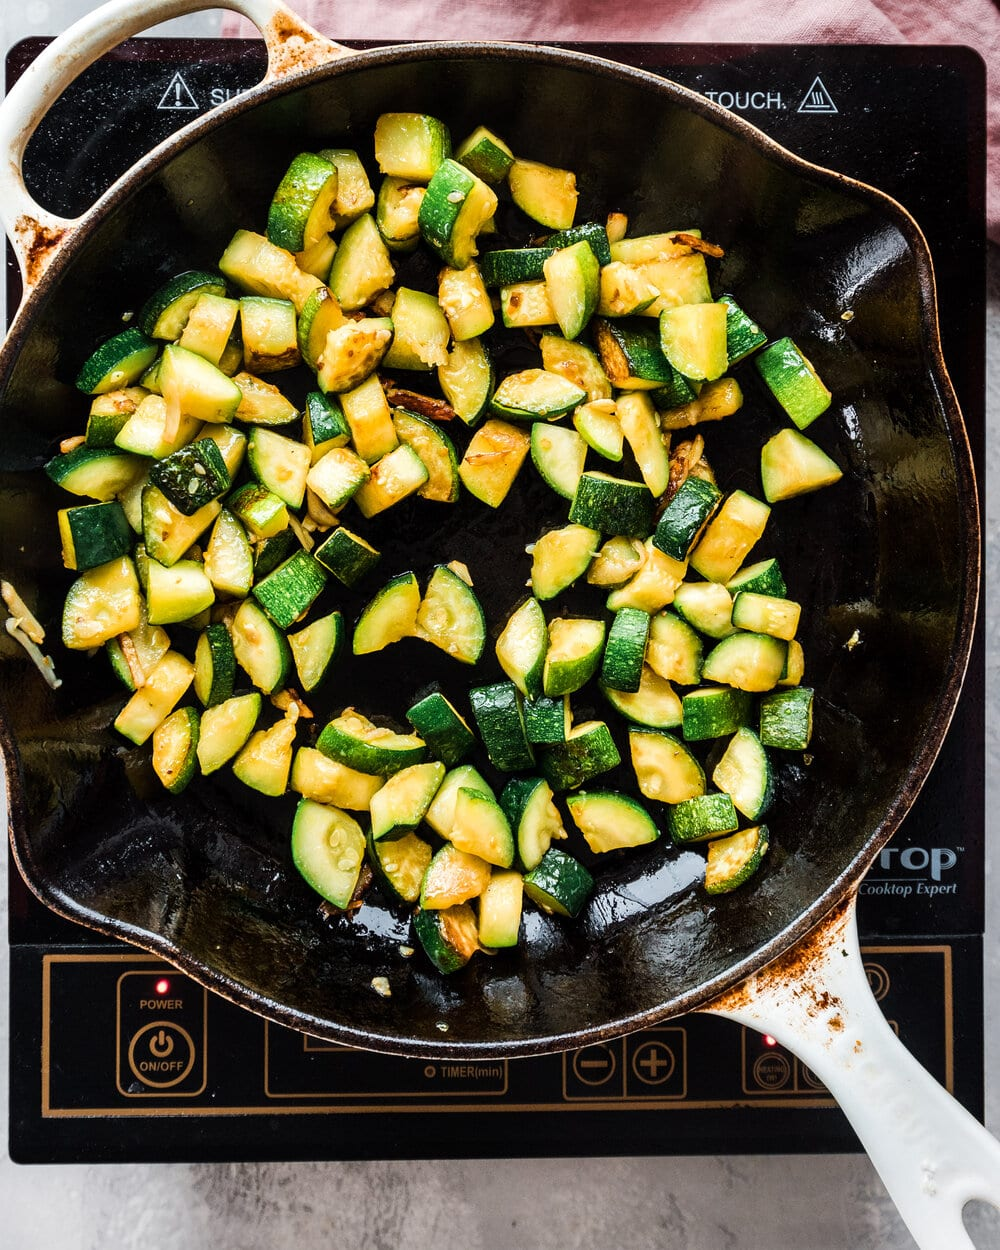 zucchini getting browned in a skillet